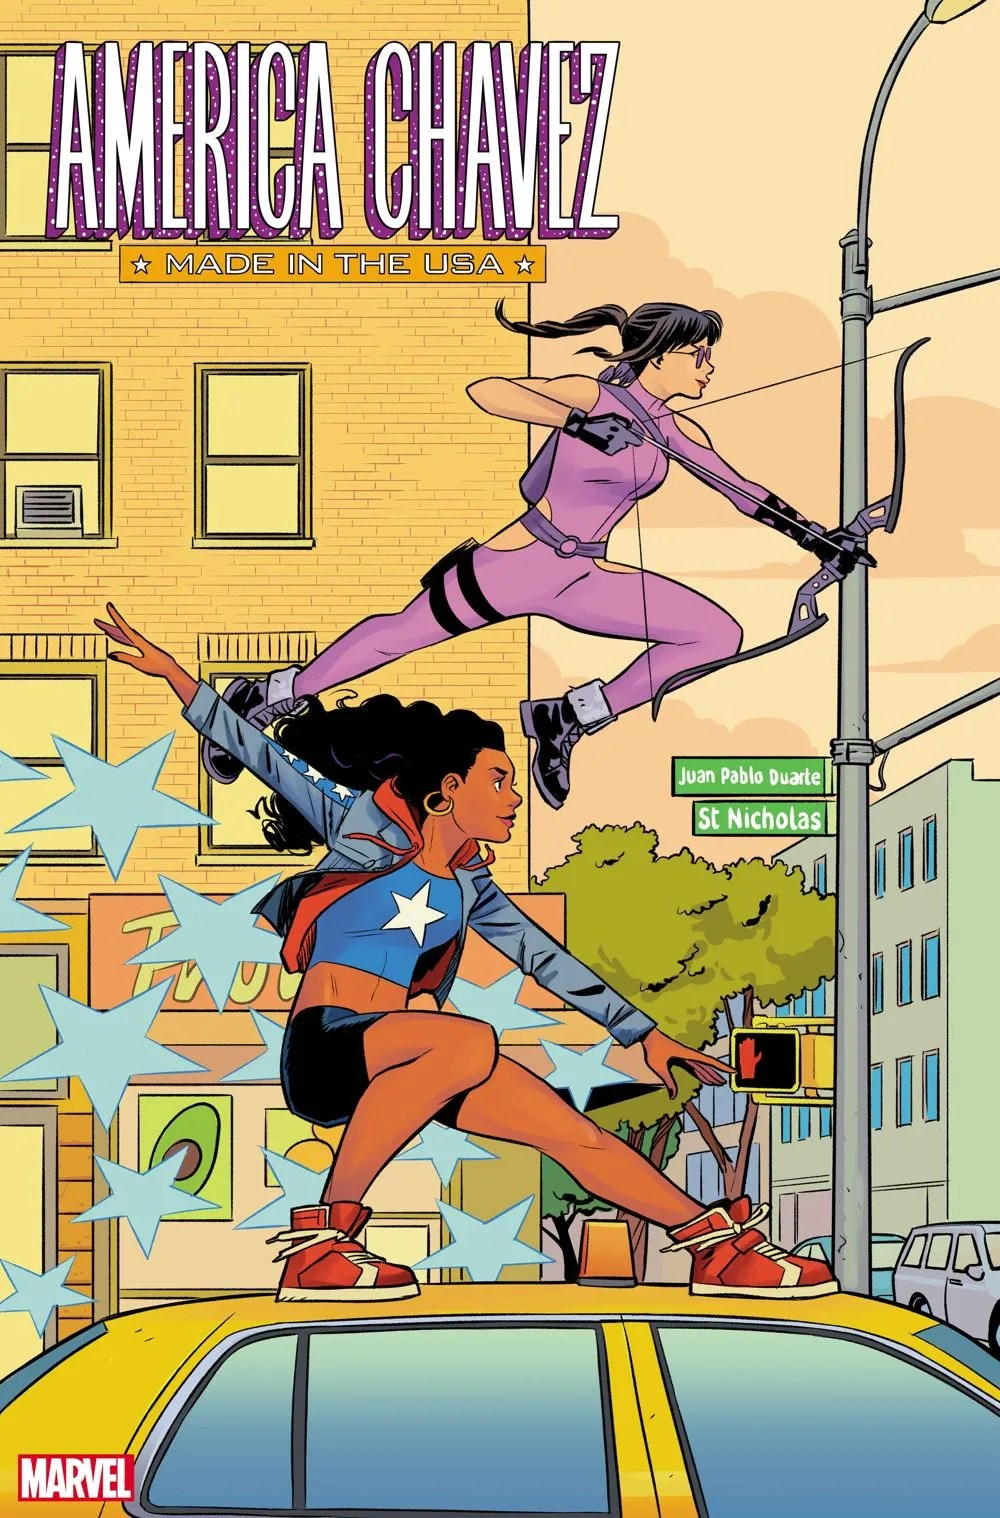 AMERCHAVEZUSA2021005_Bustos-var First Look at AMERICA CHAVEZ: MADE IN THE USA #4 from Marvel Comics